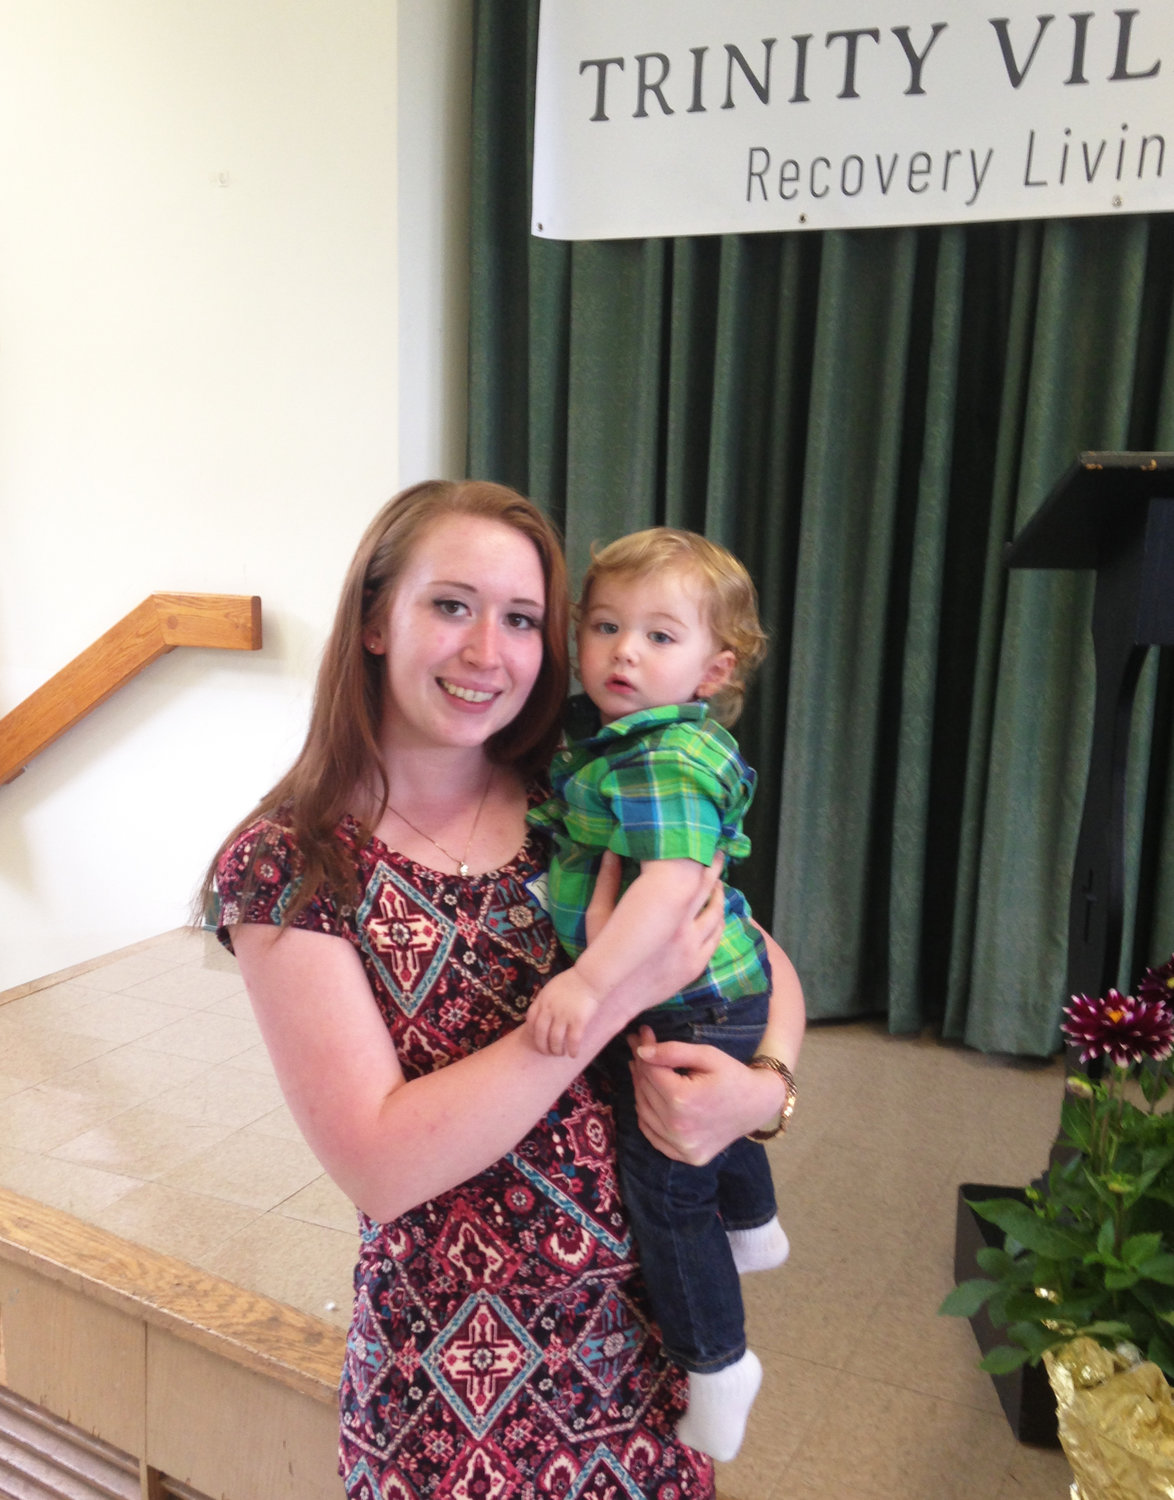 Danielle and her son at the celebration of the opening of The Blessing Way in Portsmouth.